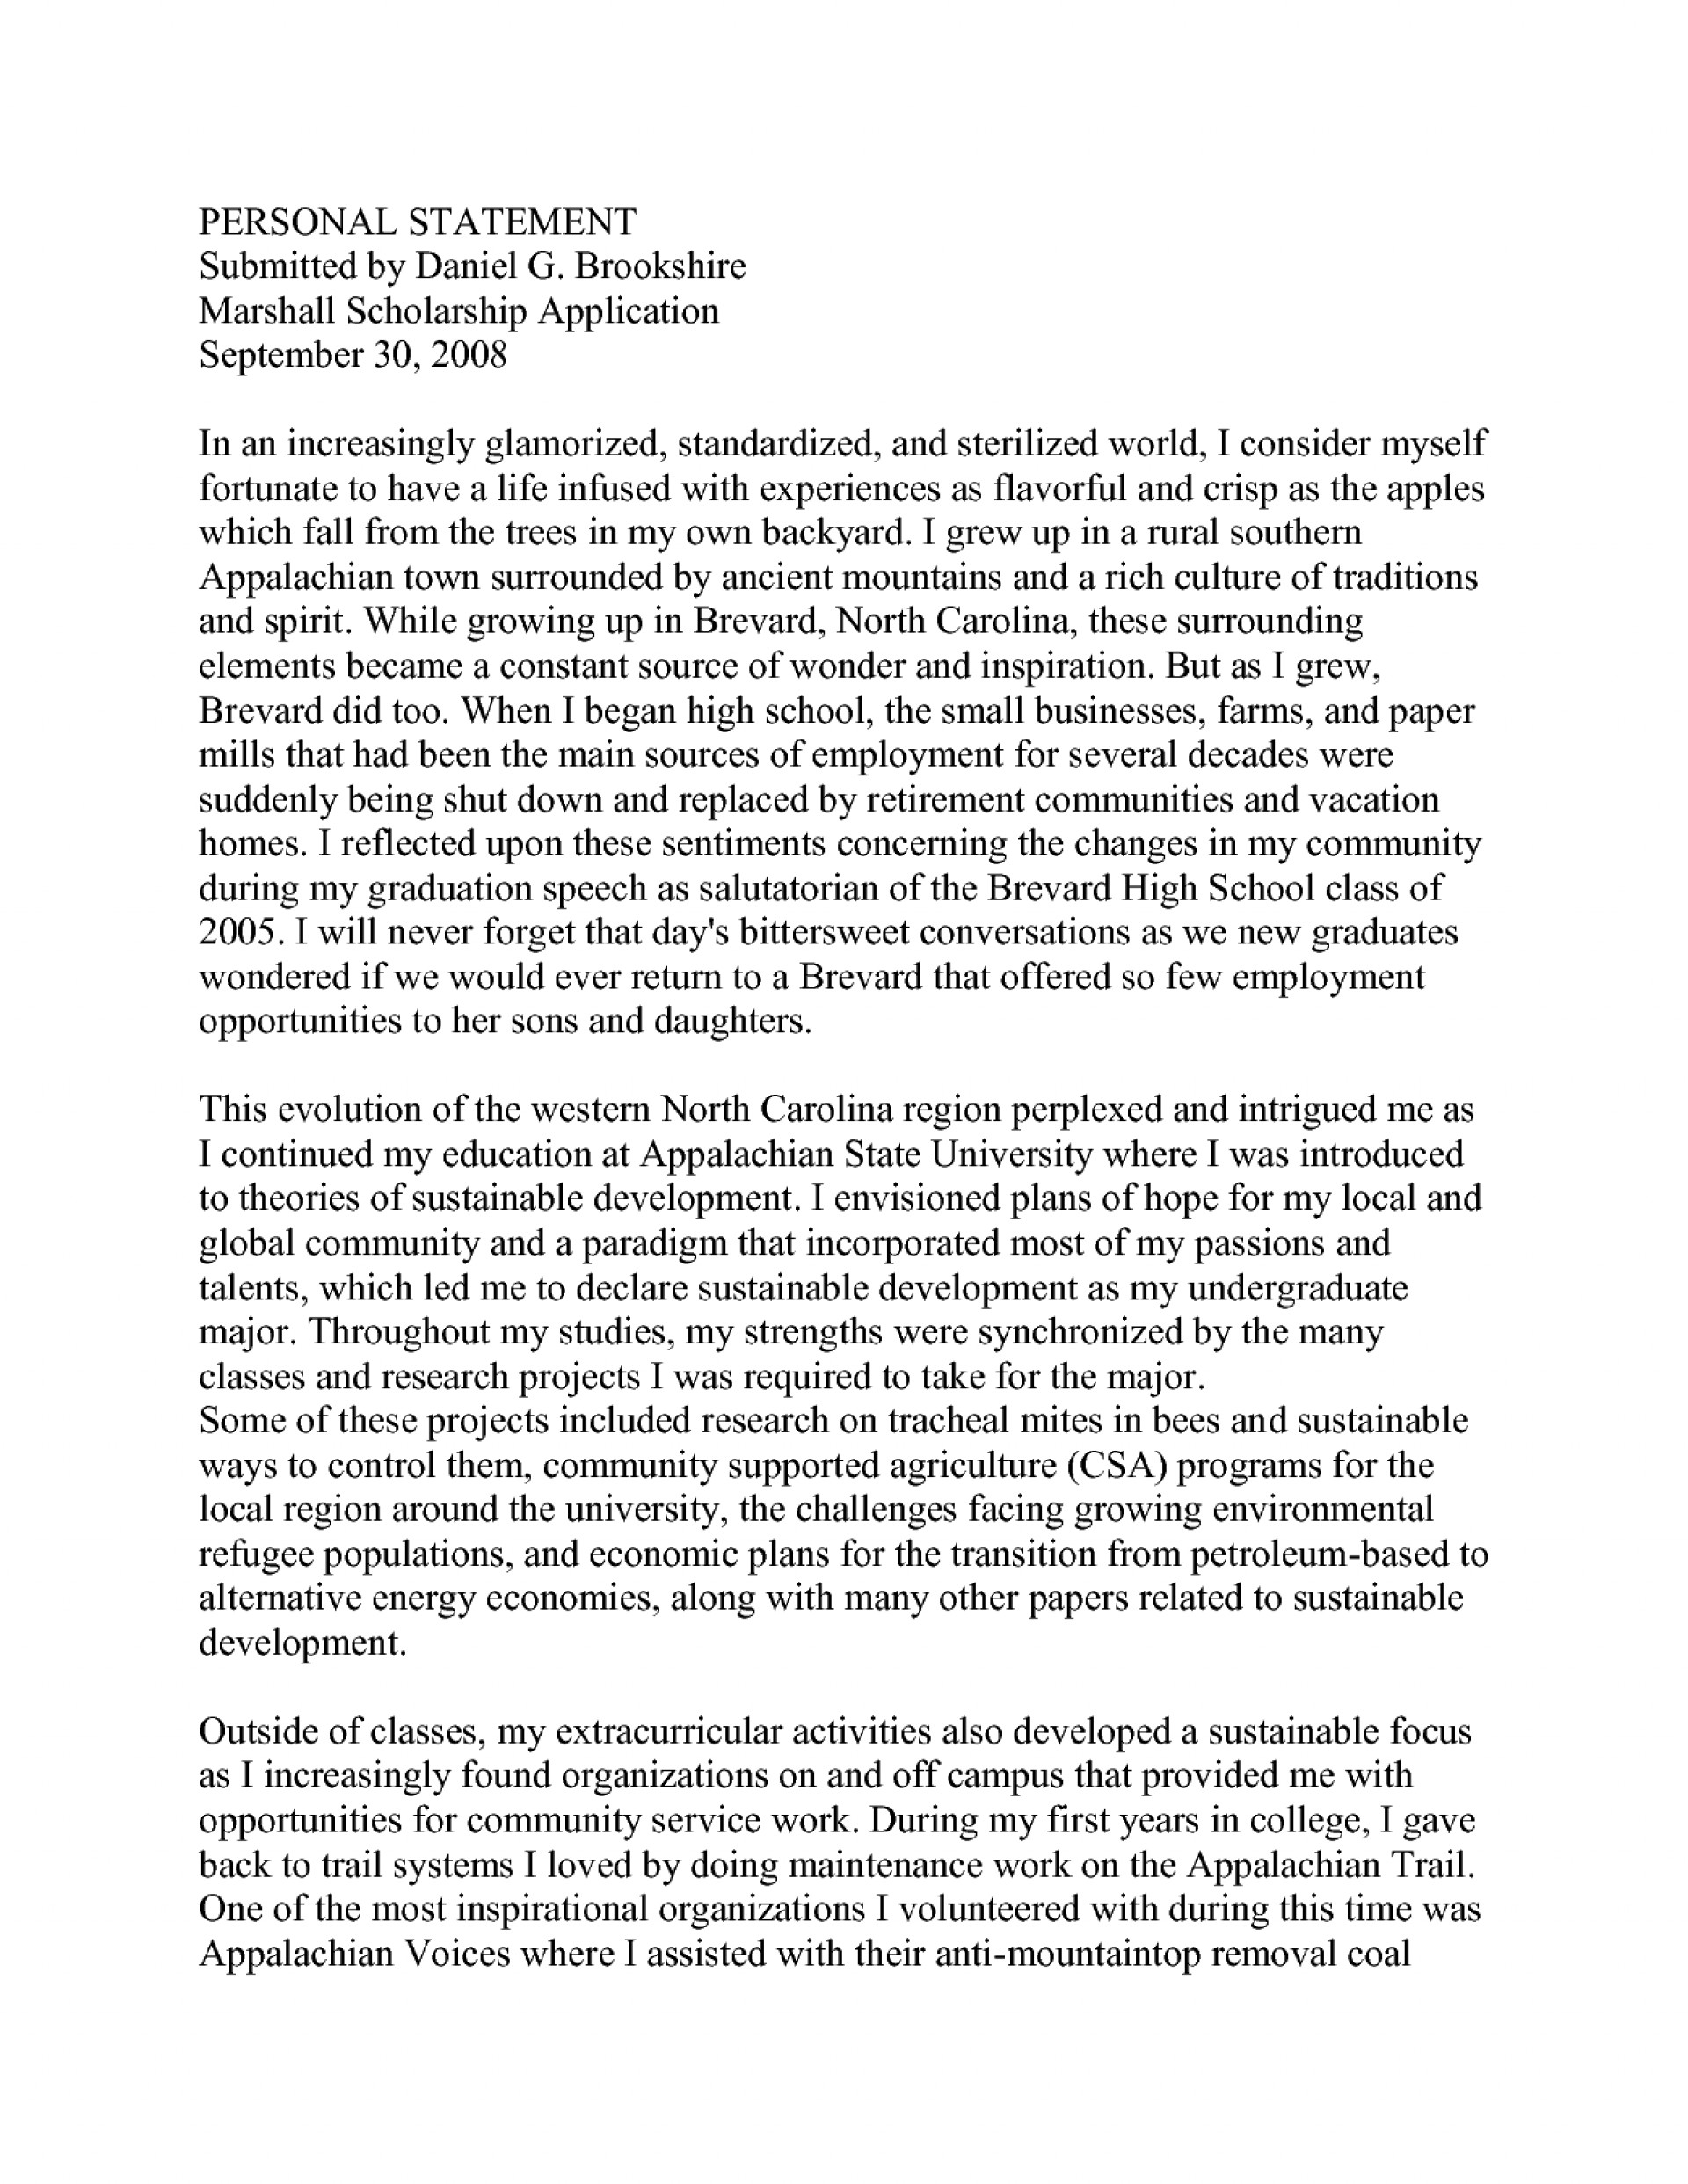 003 College Personal Statement Essays Marvelous Essay Examples 1920